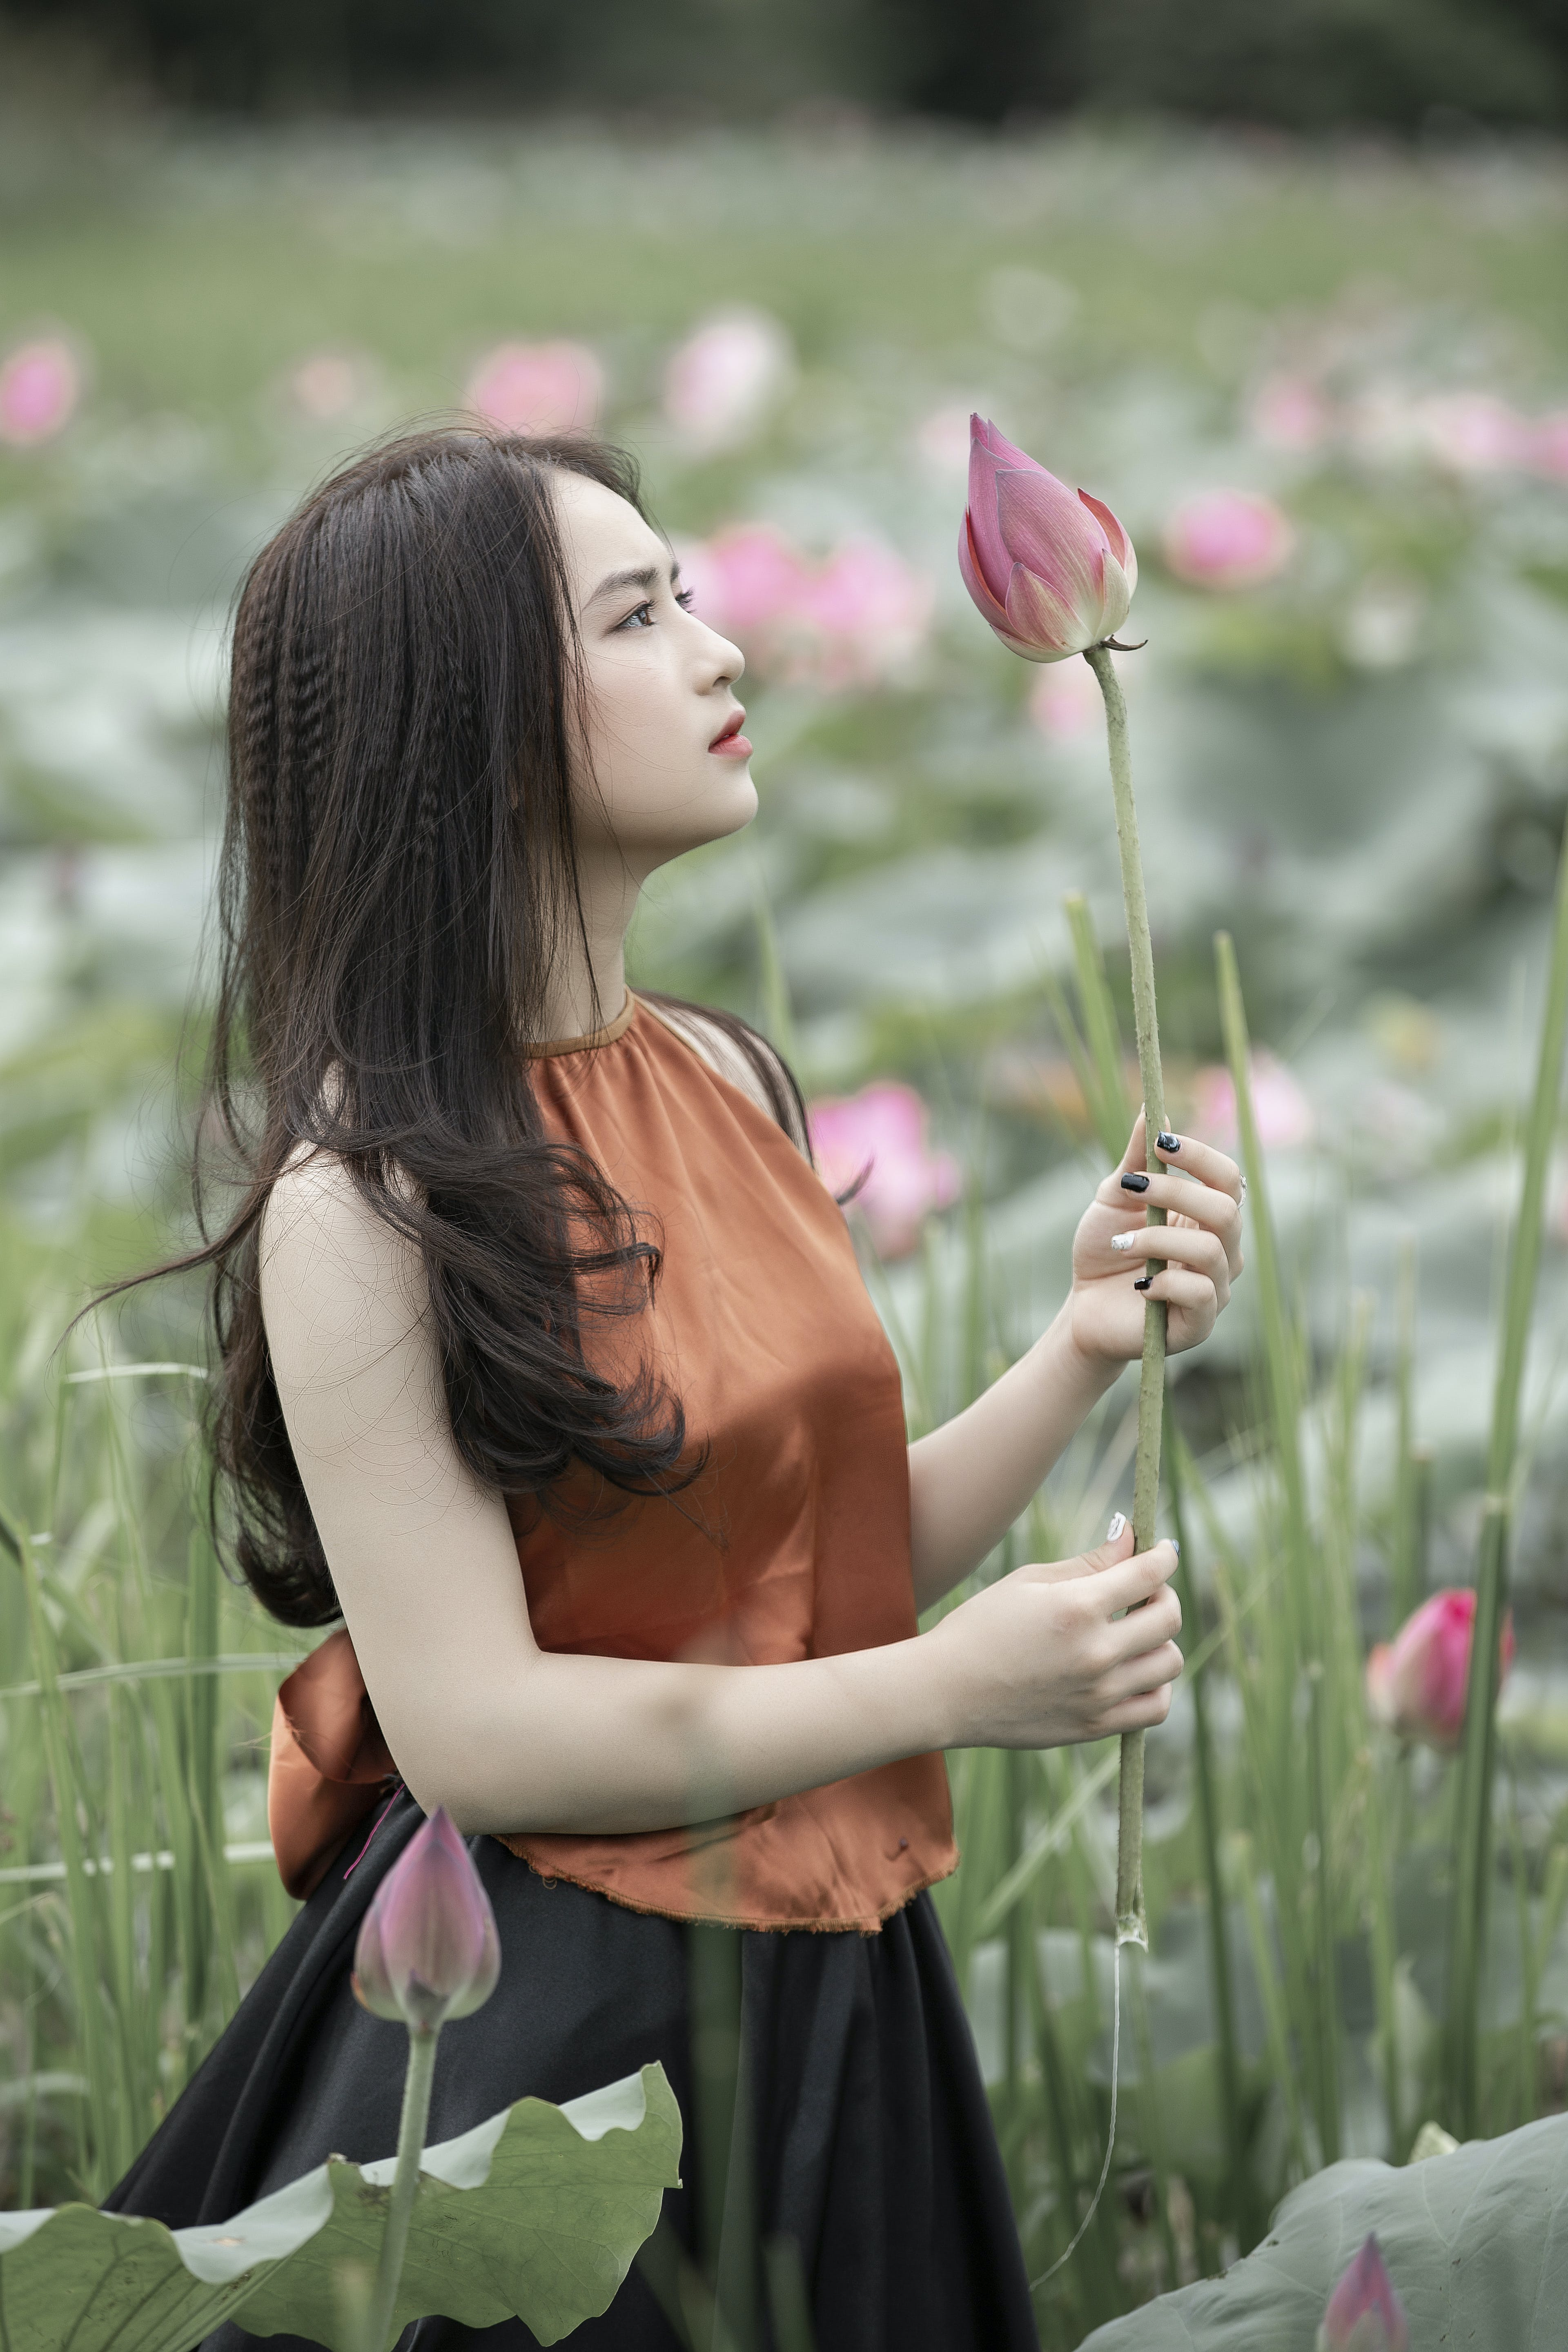 Woman in Brown Shirt Holding Pink Petaled Flower